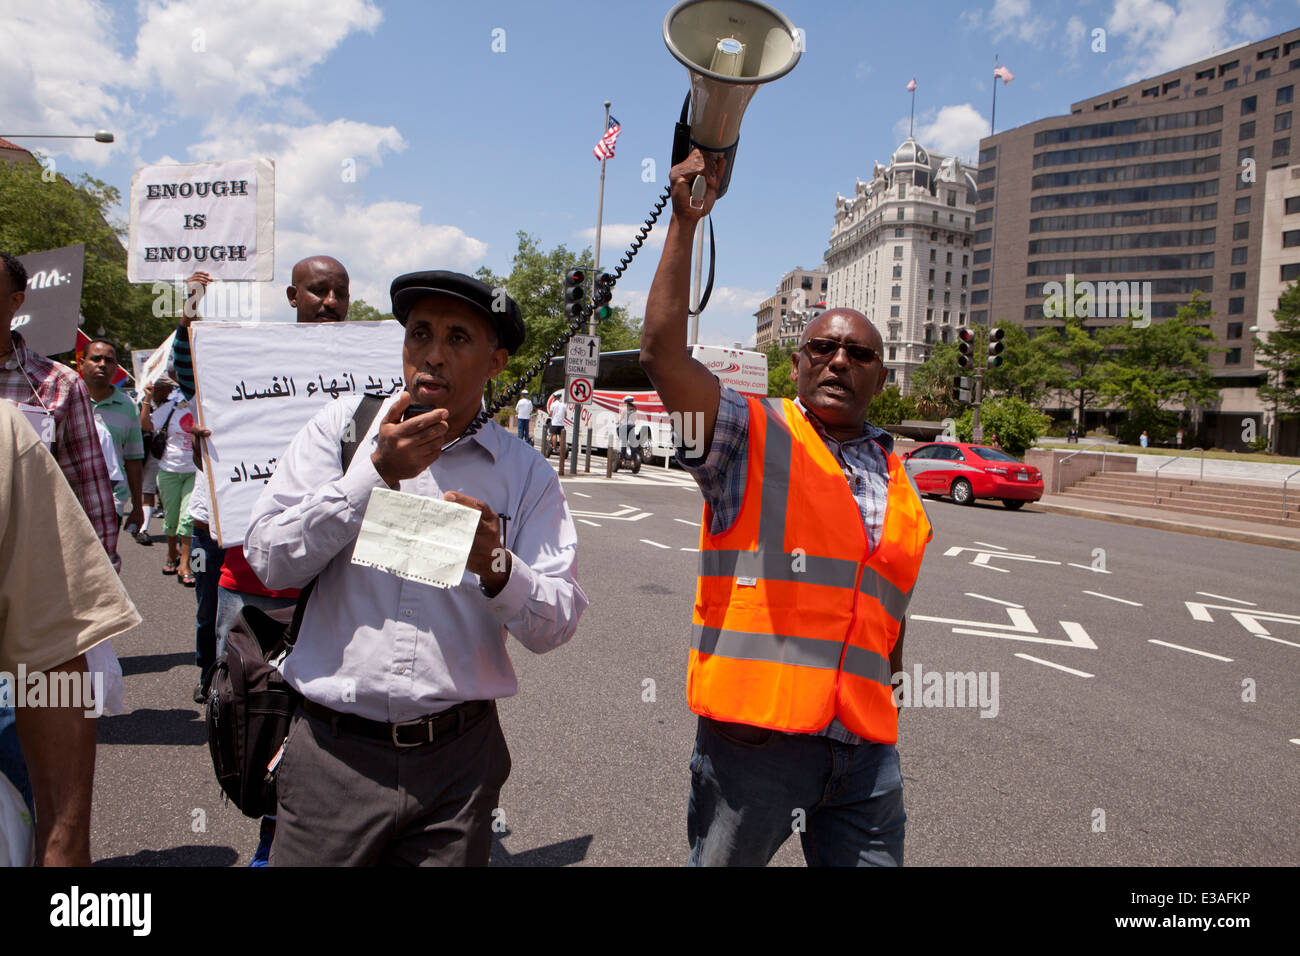 Eritreans protest for democratic change and human rights in Eritrea - Washington, DC USA - Stock Image